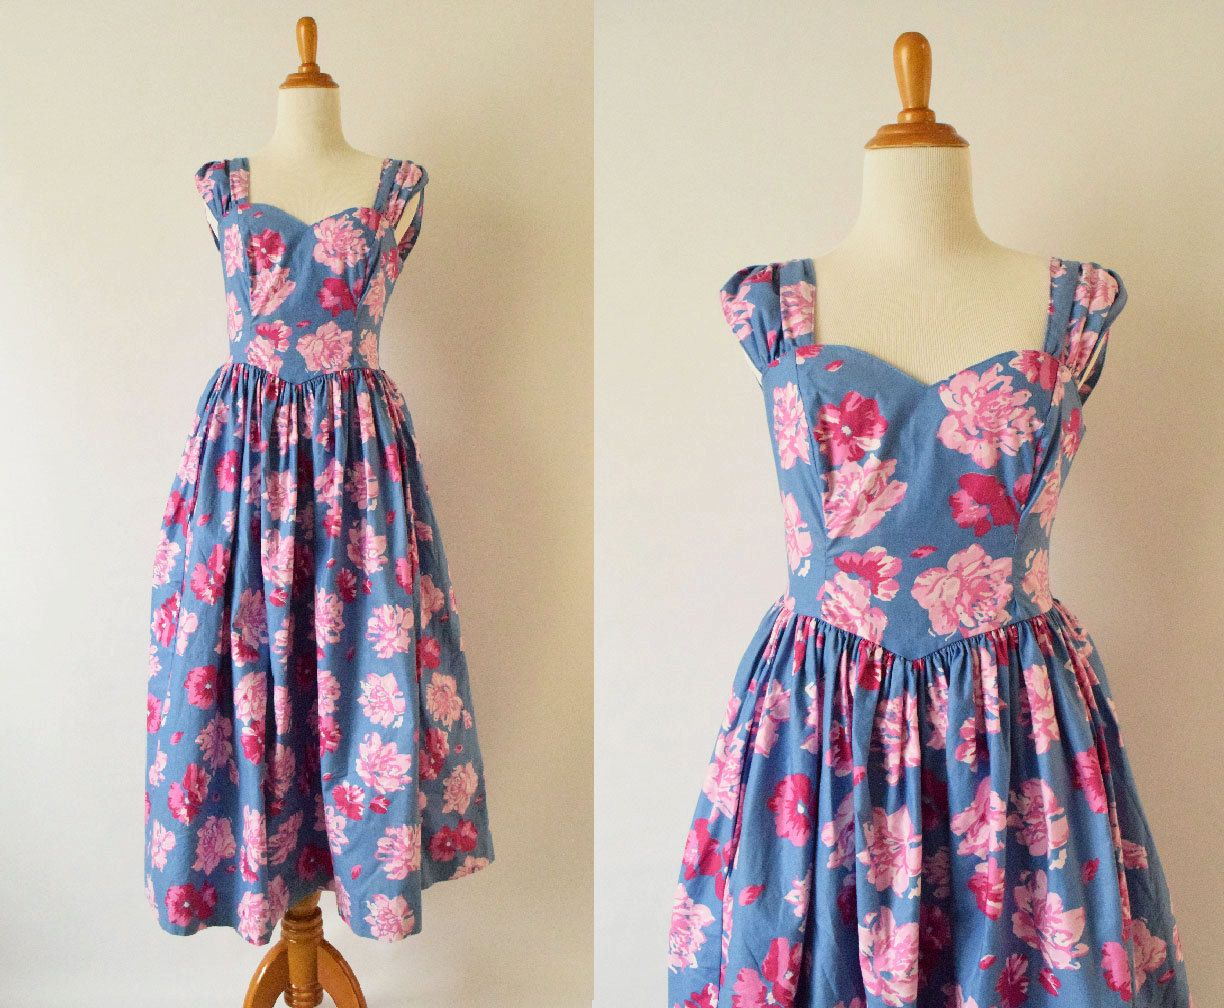 Vintage 1980's Laura Ashley Floral Dress | Pink and Purple Floral Cotton Dress by GracedVestige on Etsy